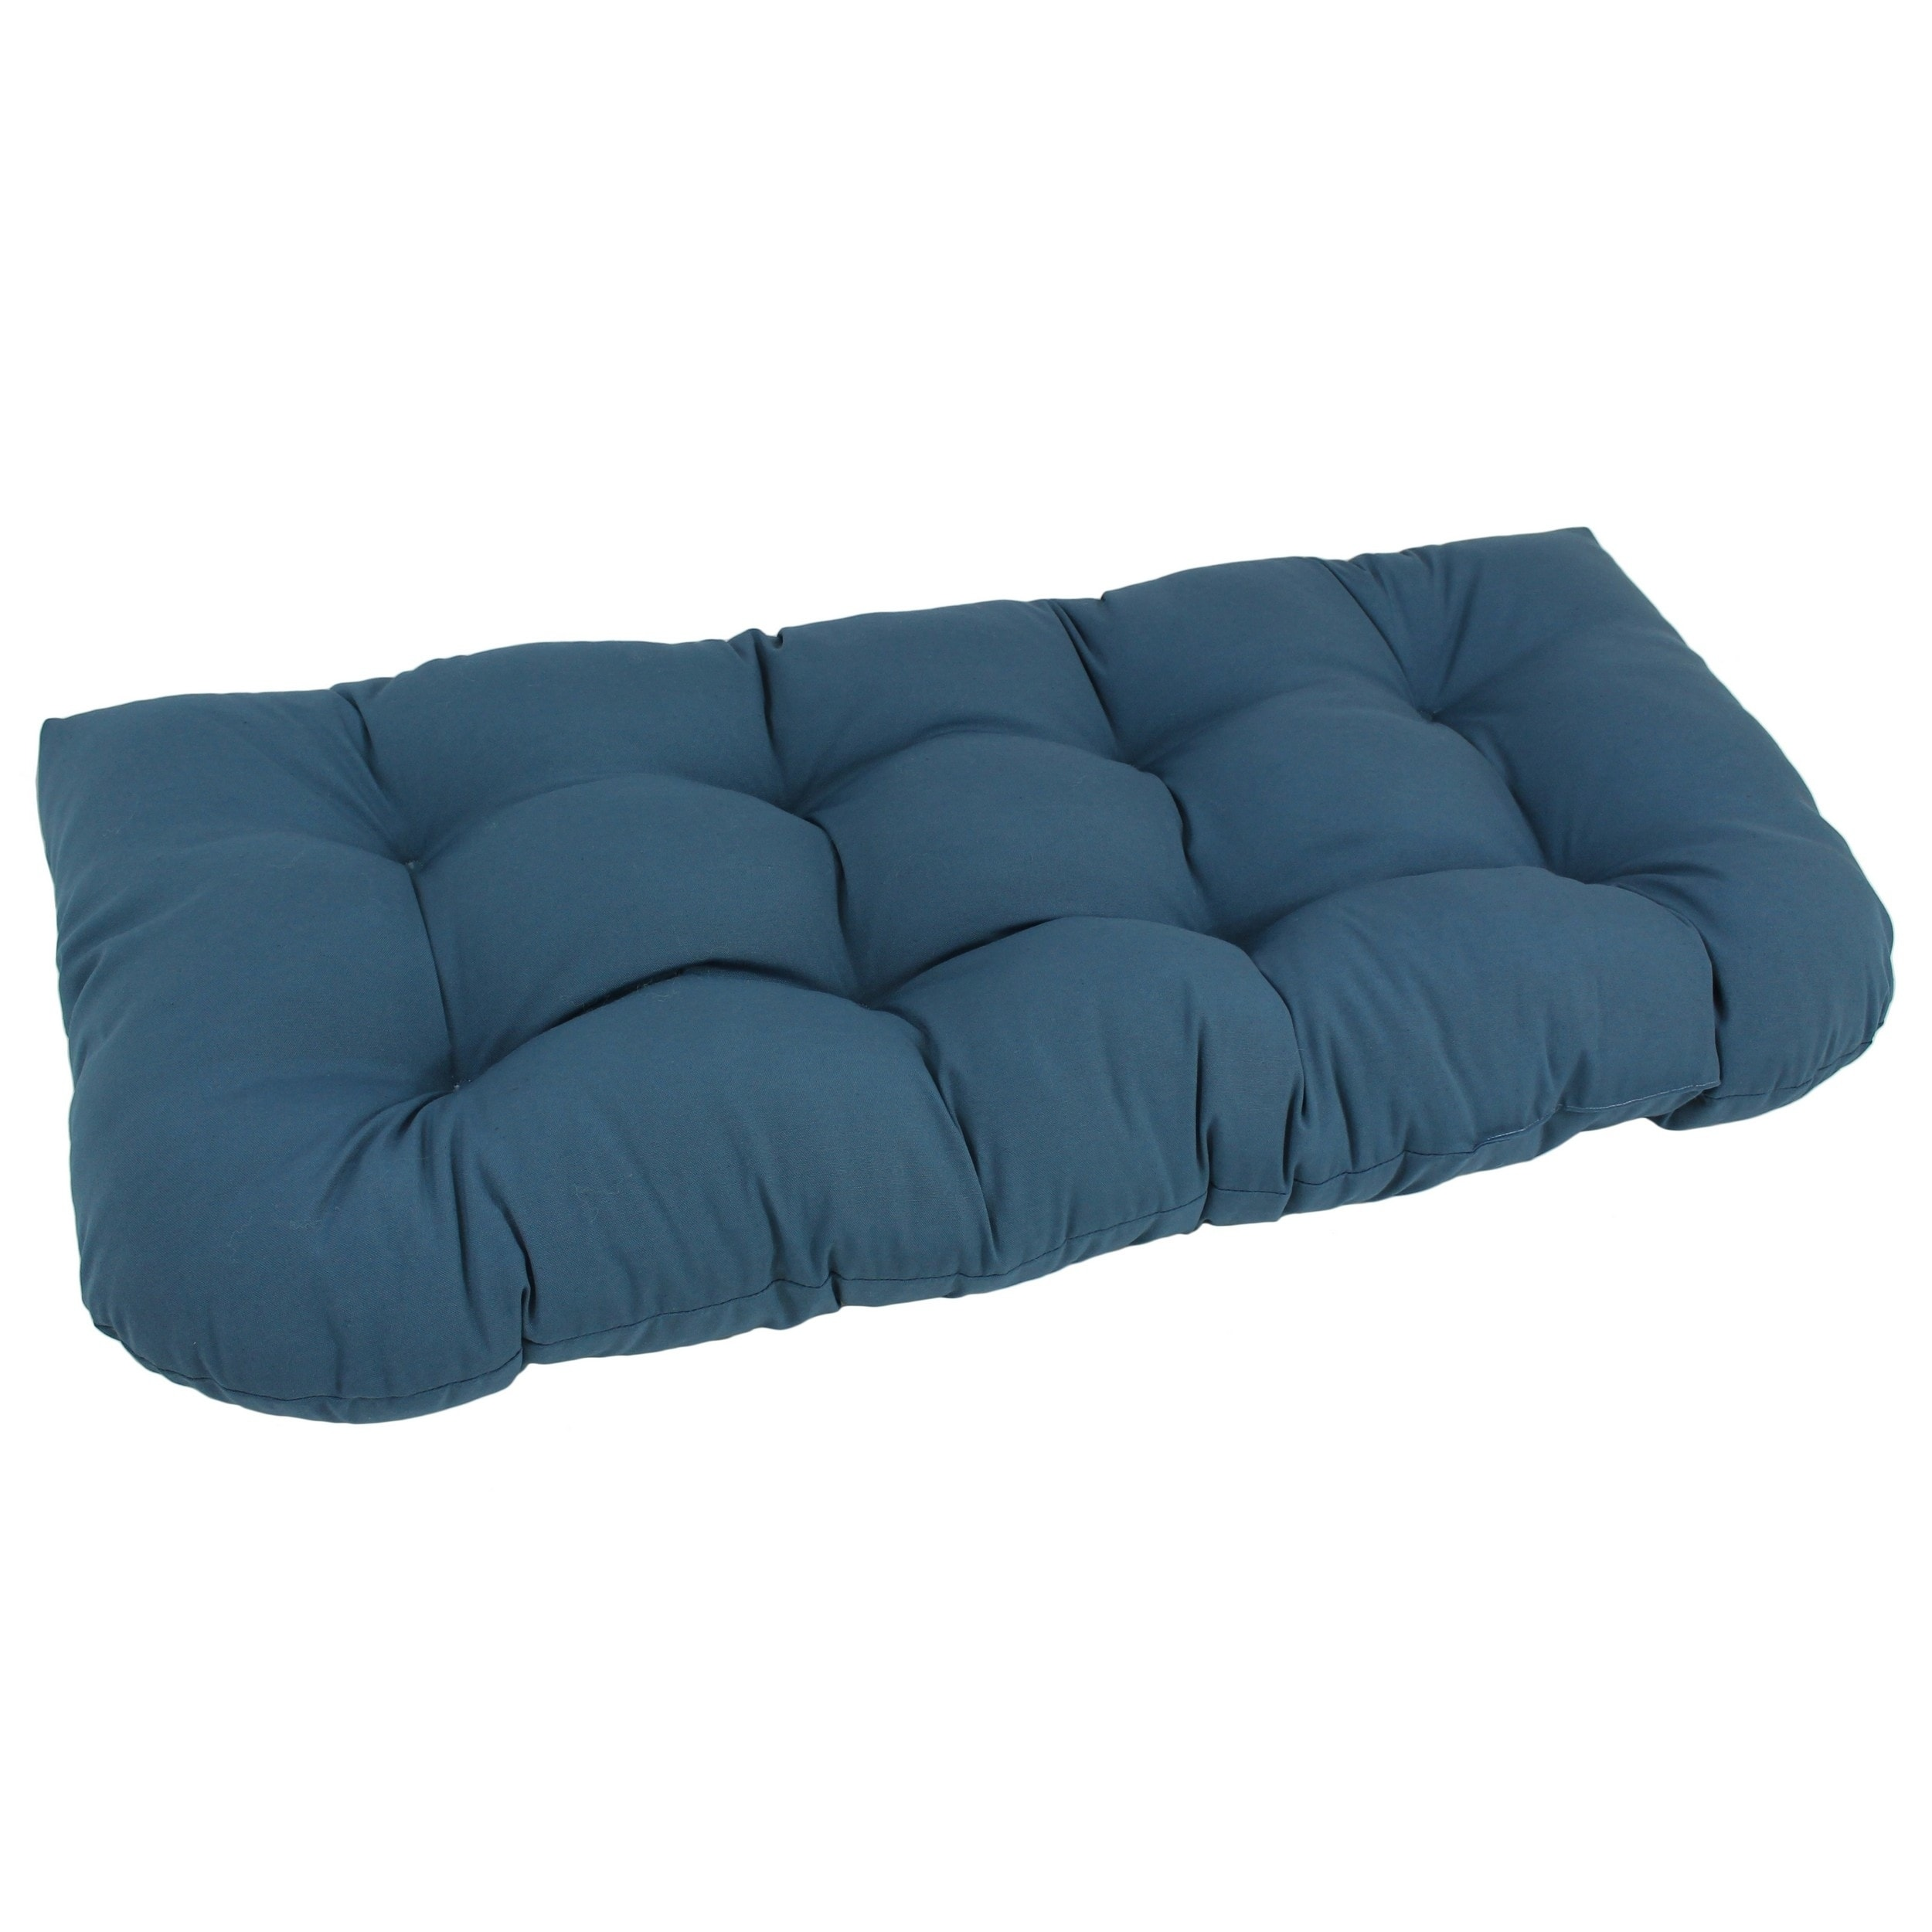 Blazing Needles Solid 42-inch U-Shaped Tufted Twill Settee Cushion at Sears.com